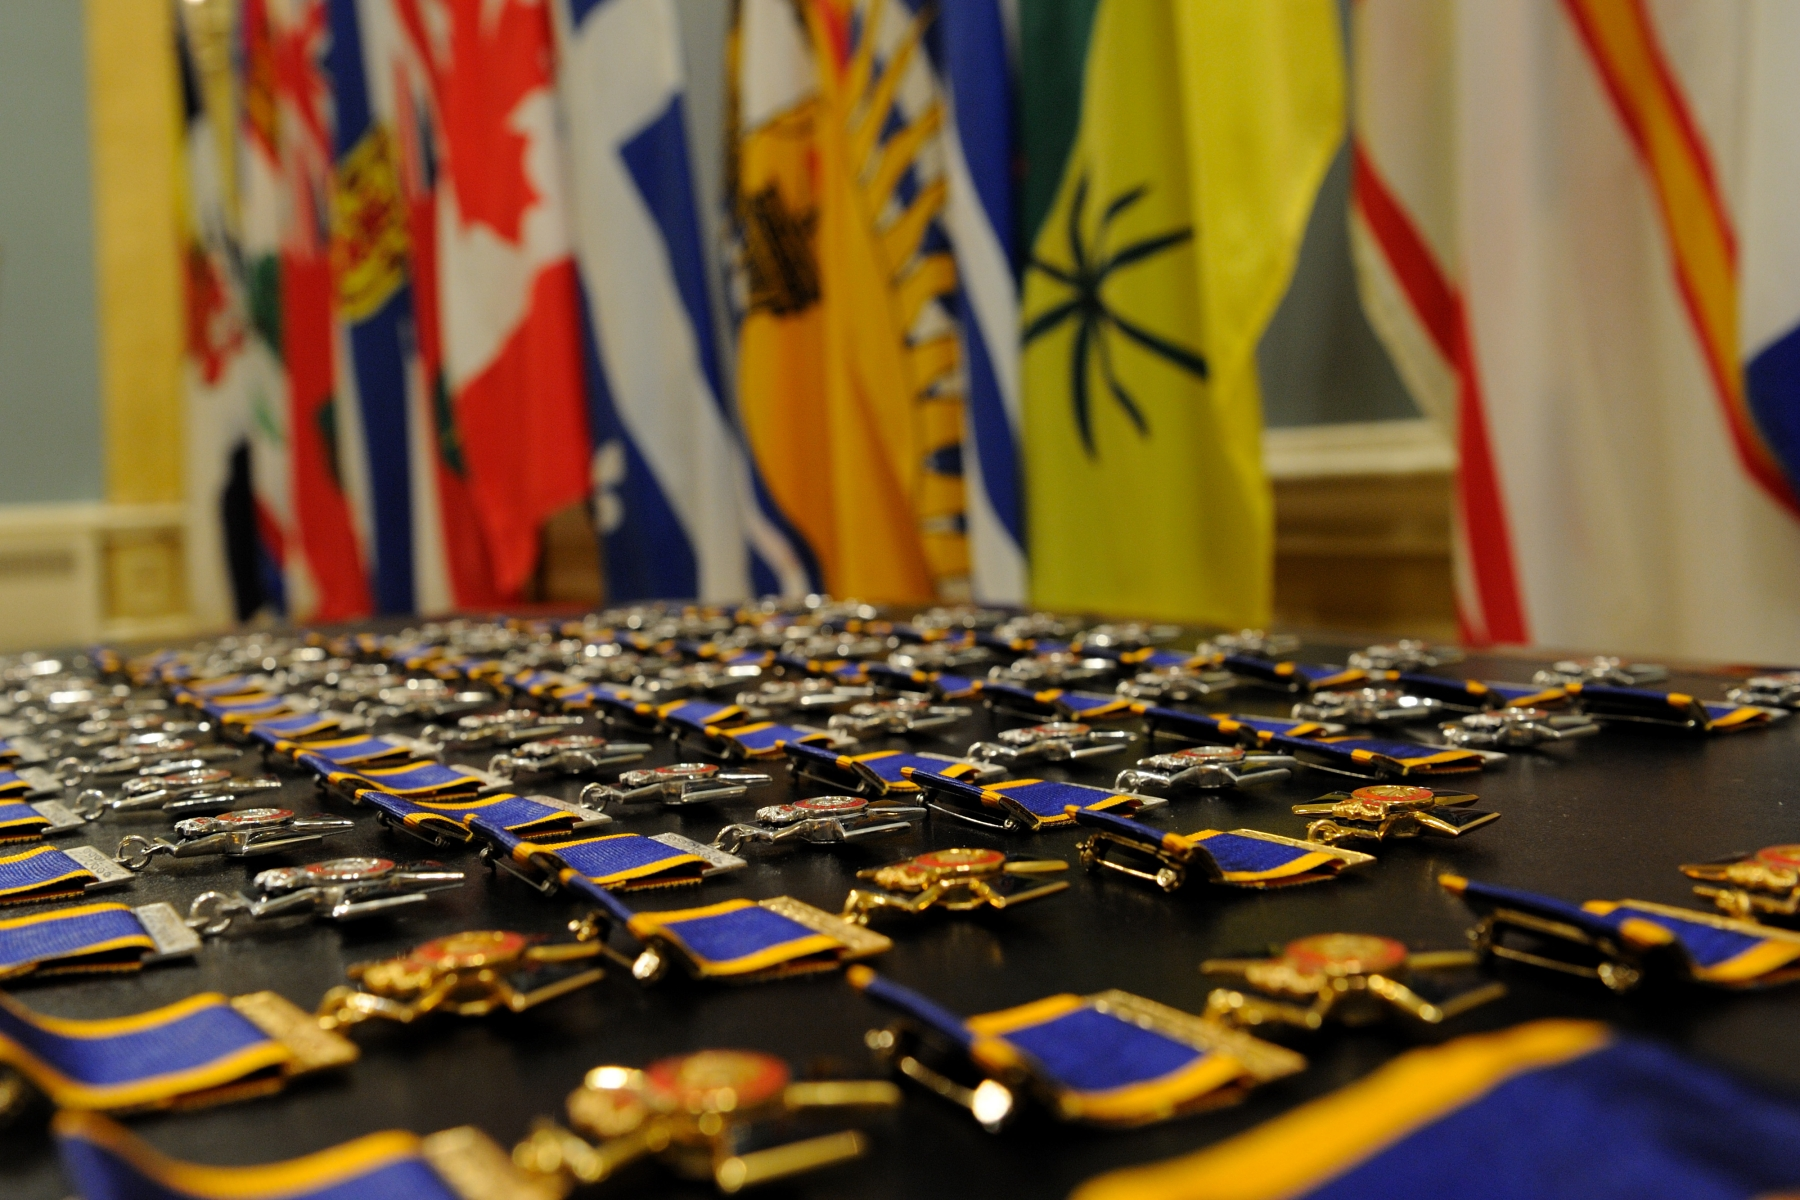 His Excellency the Right Honourable David Johnston, Governor General and Commander-in-Chief of Canada, presided over an Order of Military Merit investiture ceremony at Rideau Hall, on February 18, 2011. The Governor General bestowed the honour on three Commanders, eight Officers and 45 Members.